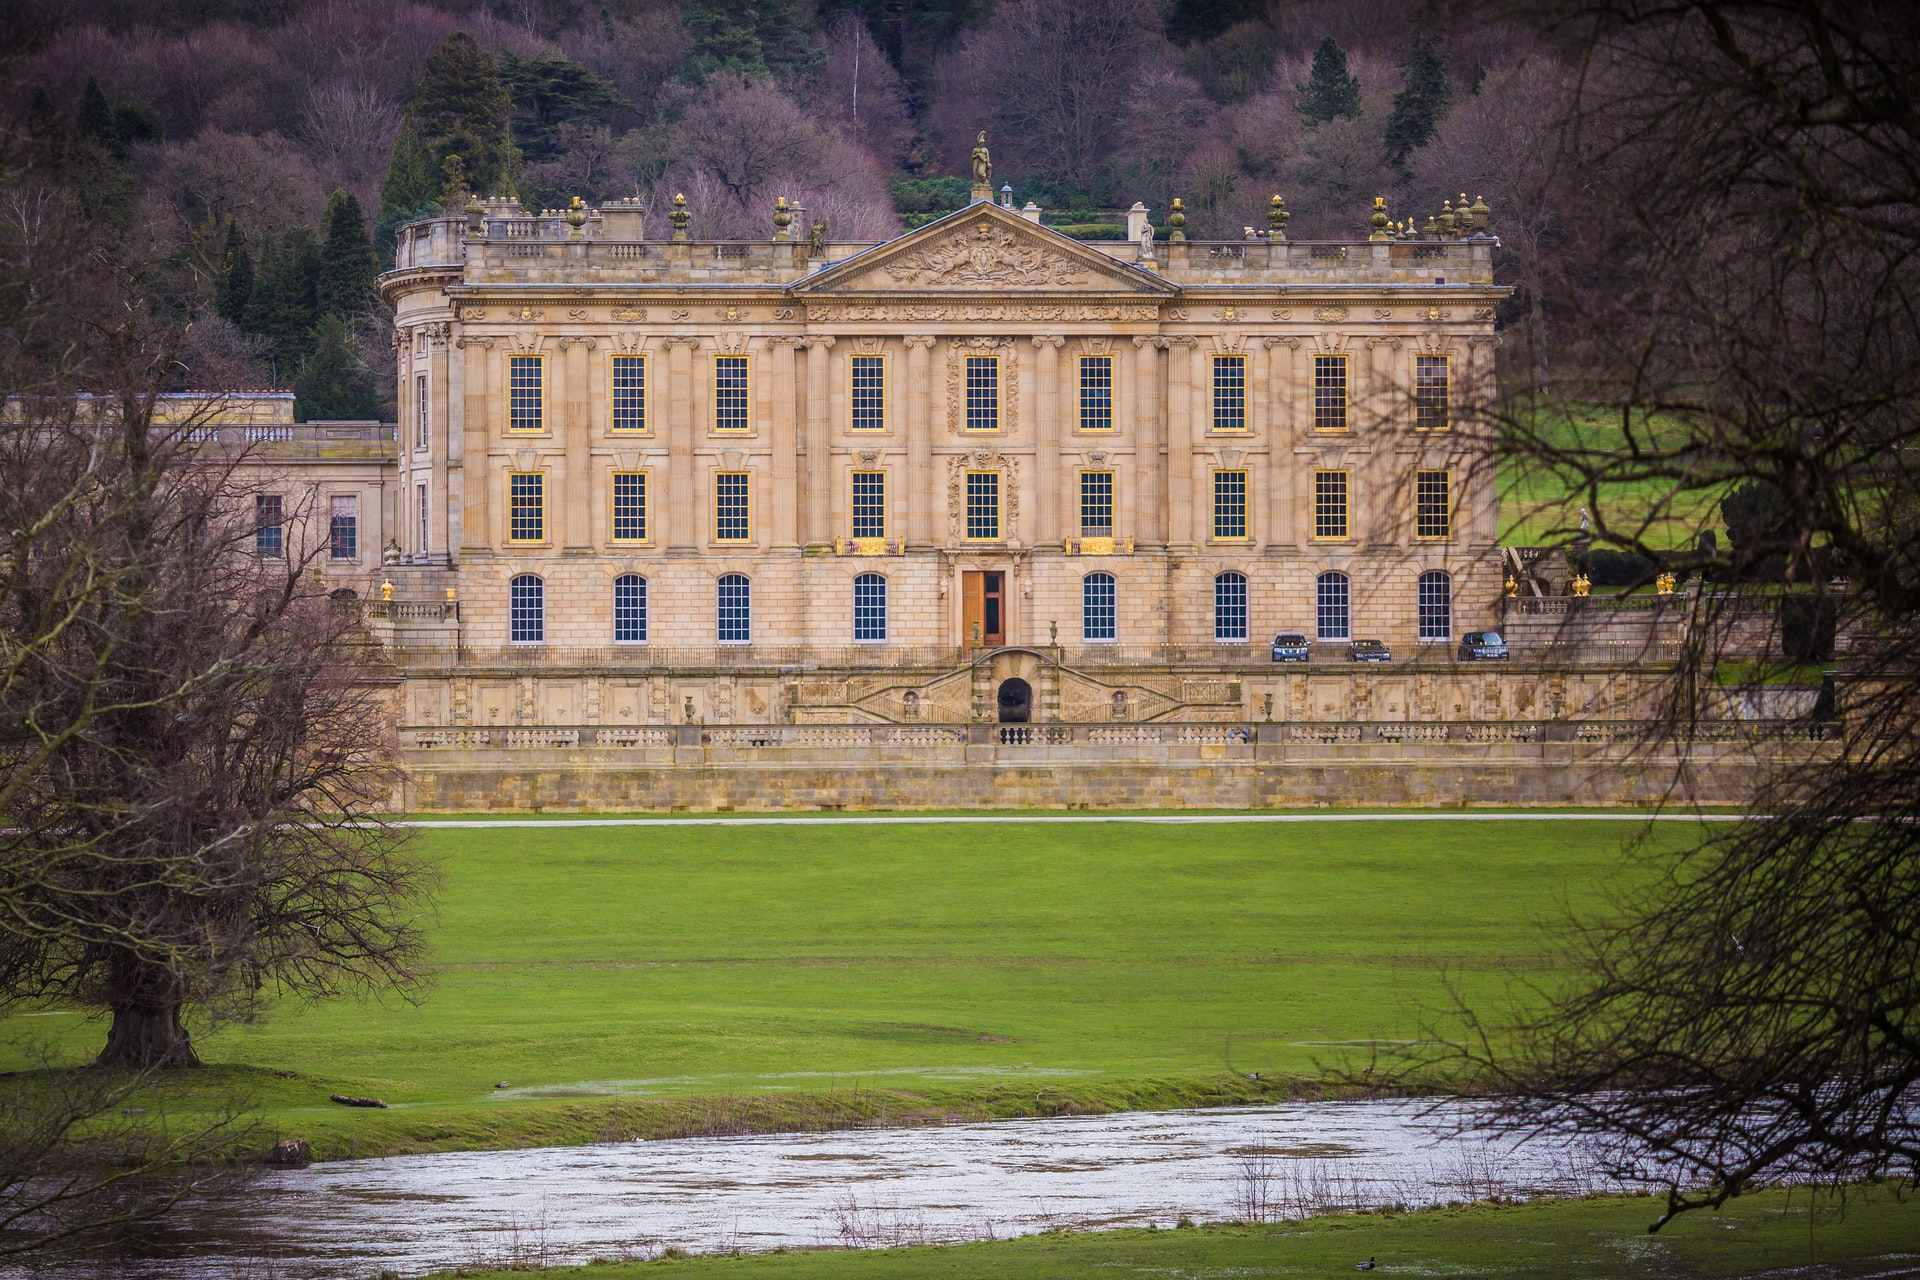 chatsworth-house-with-green-grounds-and-stream-in-foreground-day-trips-from-derby